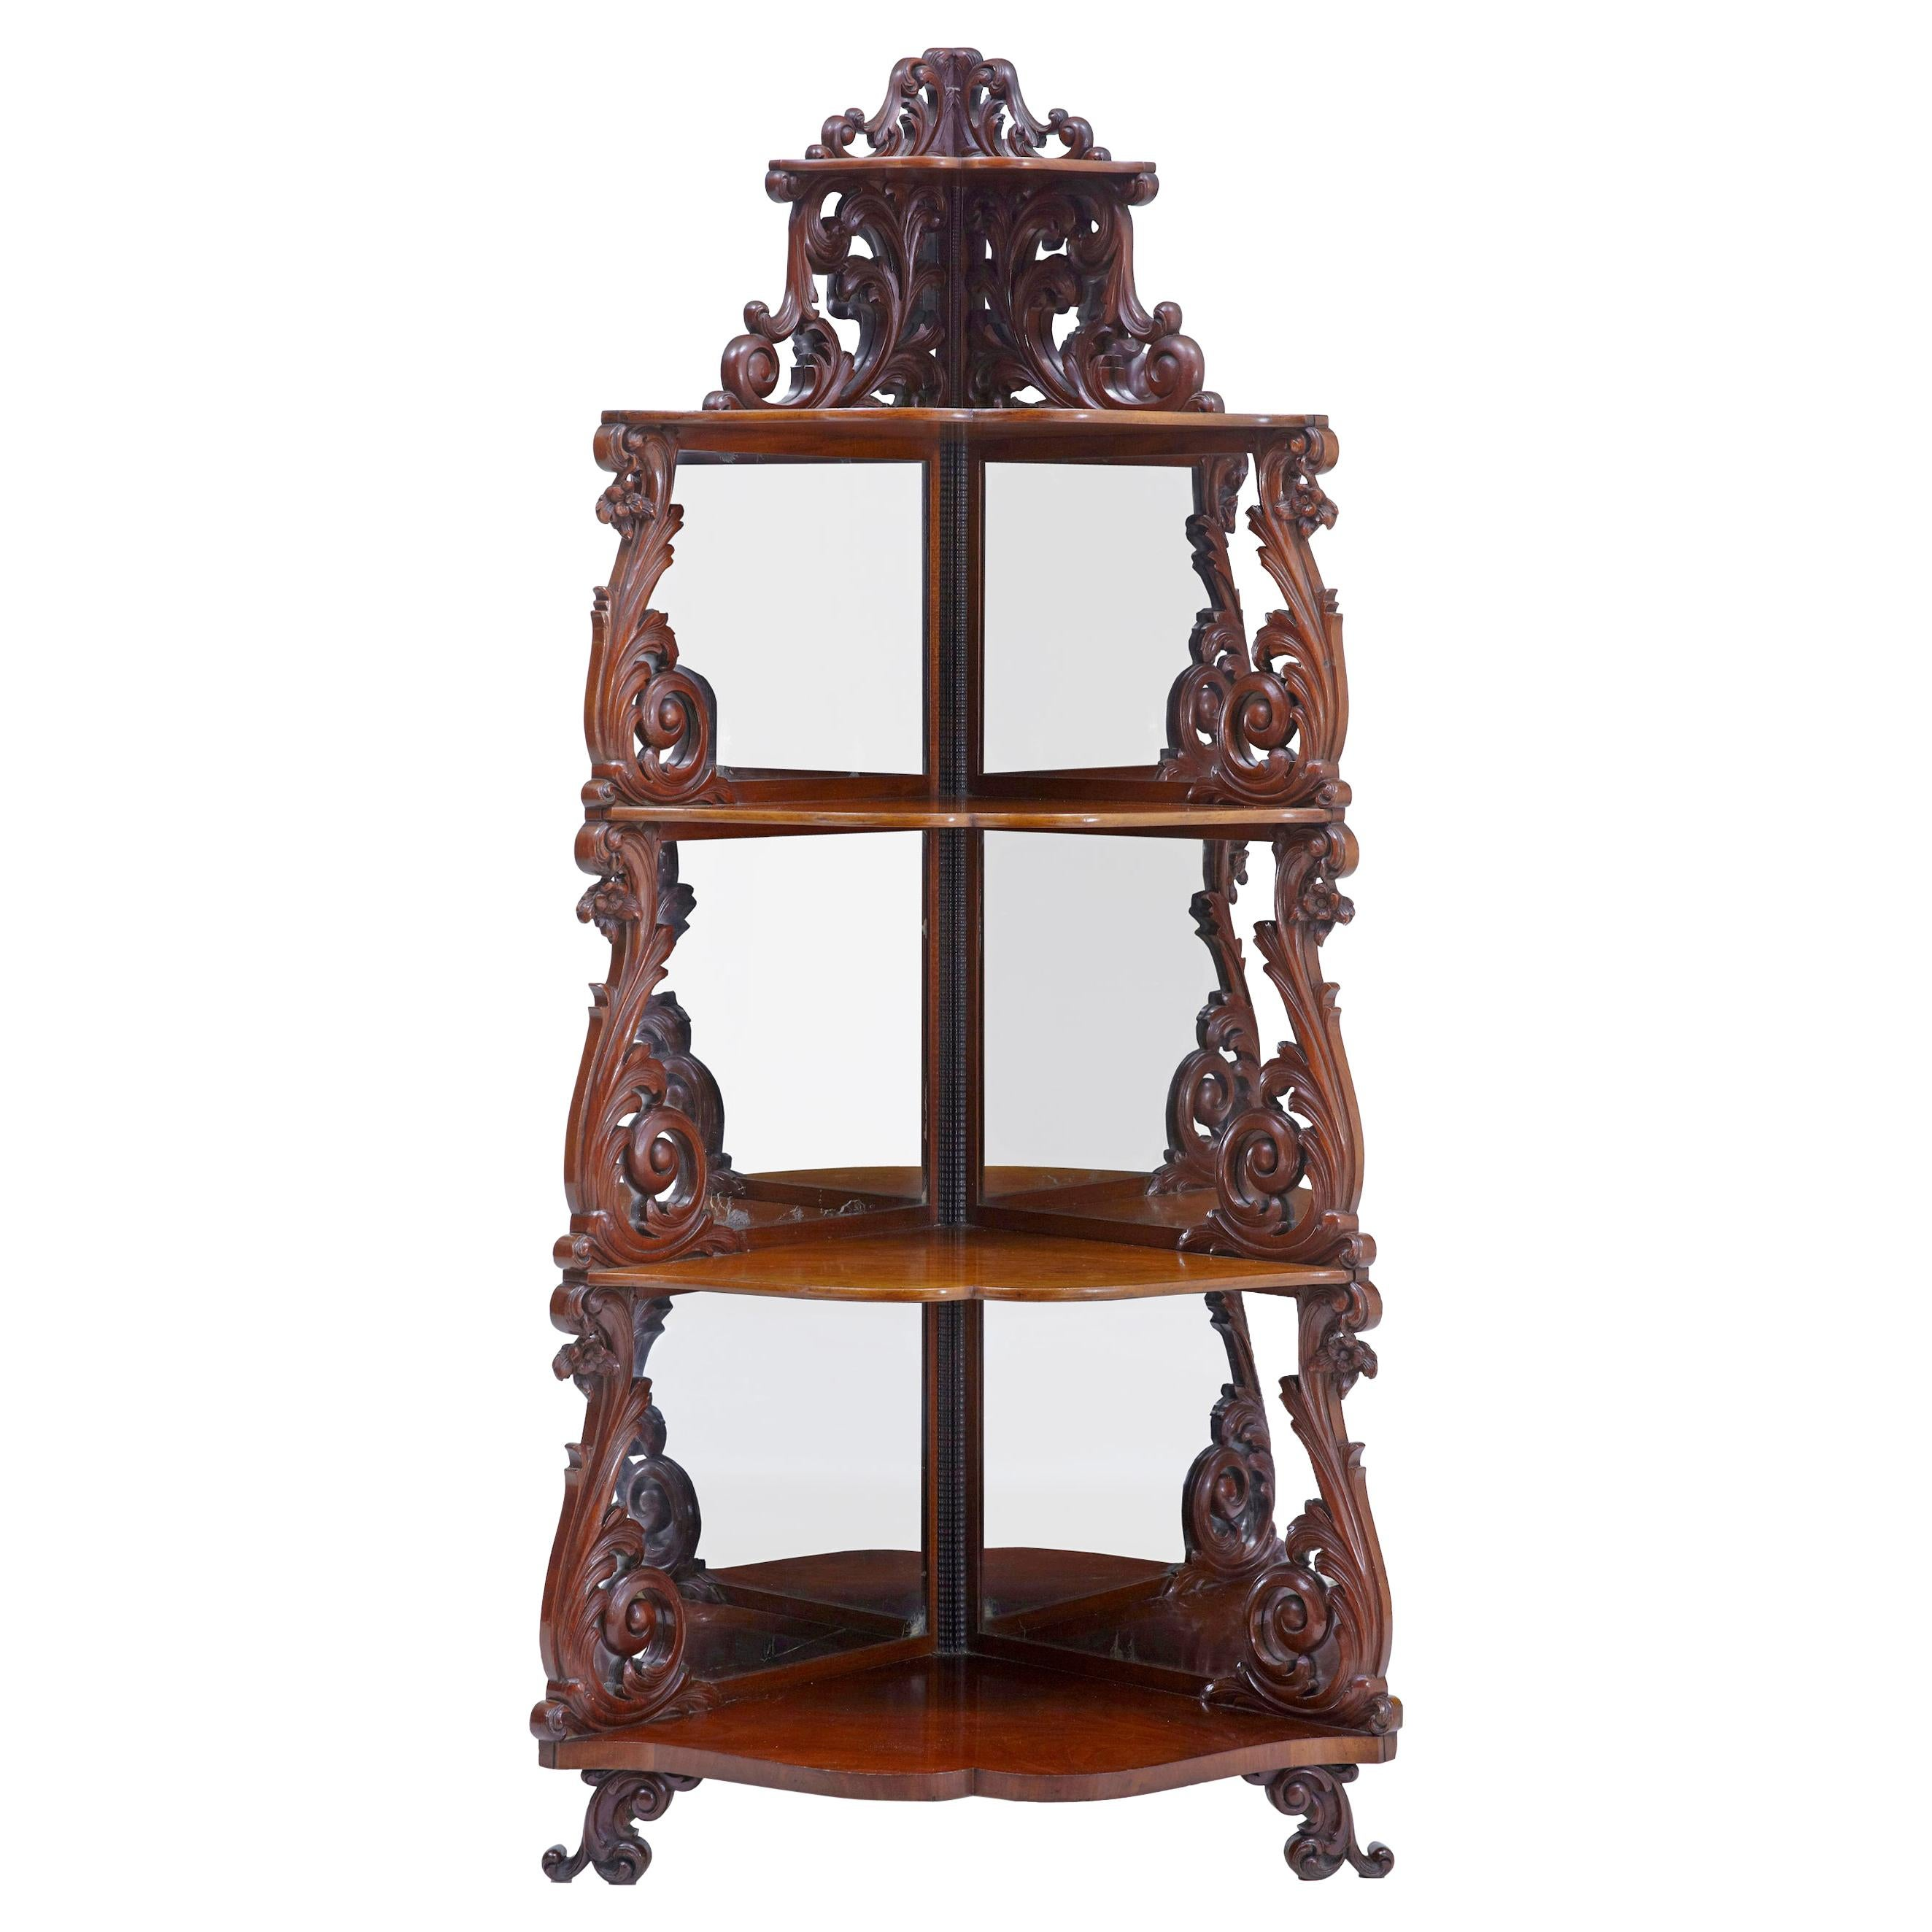 19th Century Carved Mahogany Victorian Mirrored Whatnot